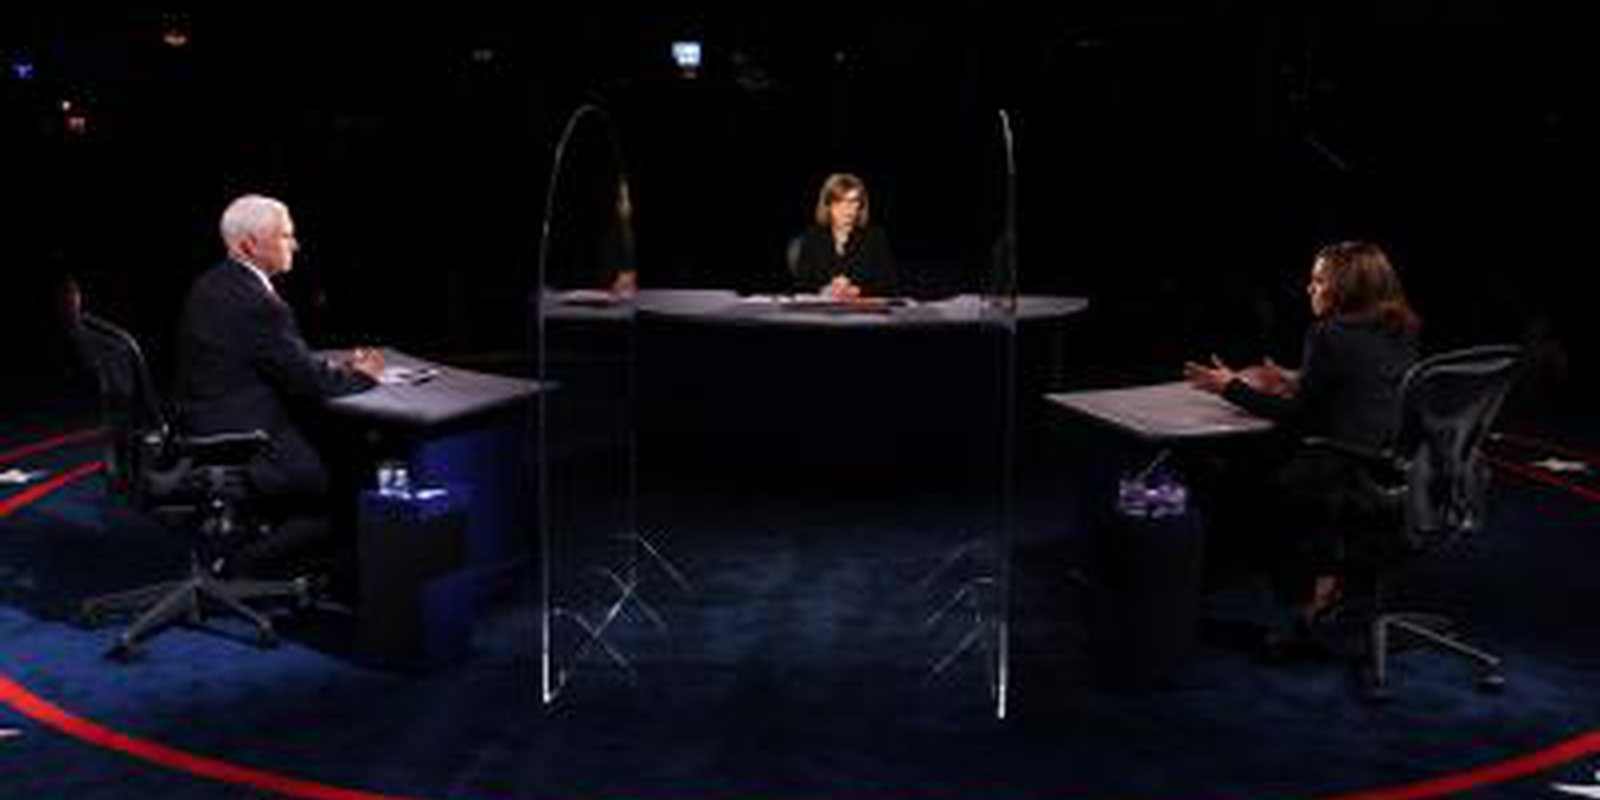 Senator Kamala Harris and Vice President Mike Pence participate in the vice presidential debate on 7 October 2020 in Salt Lake City, Utah. Photo: Getty Images.